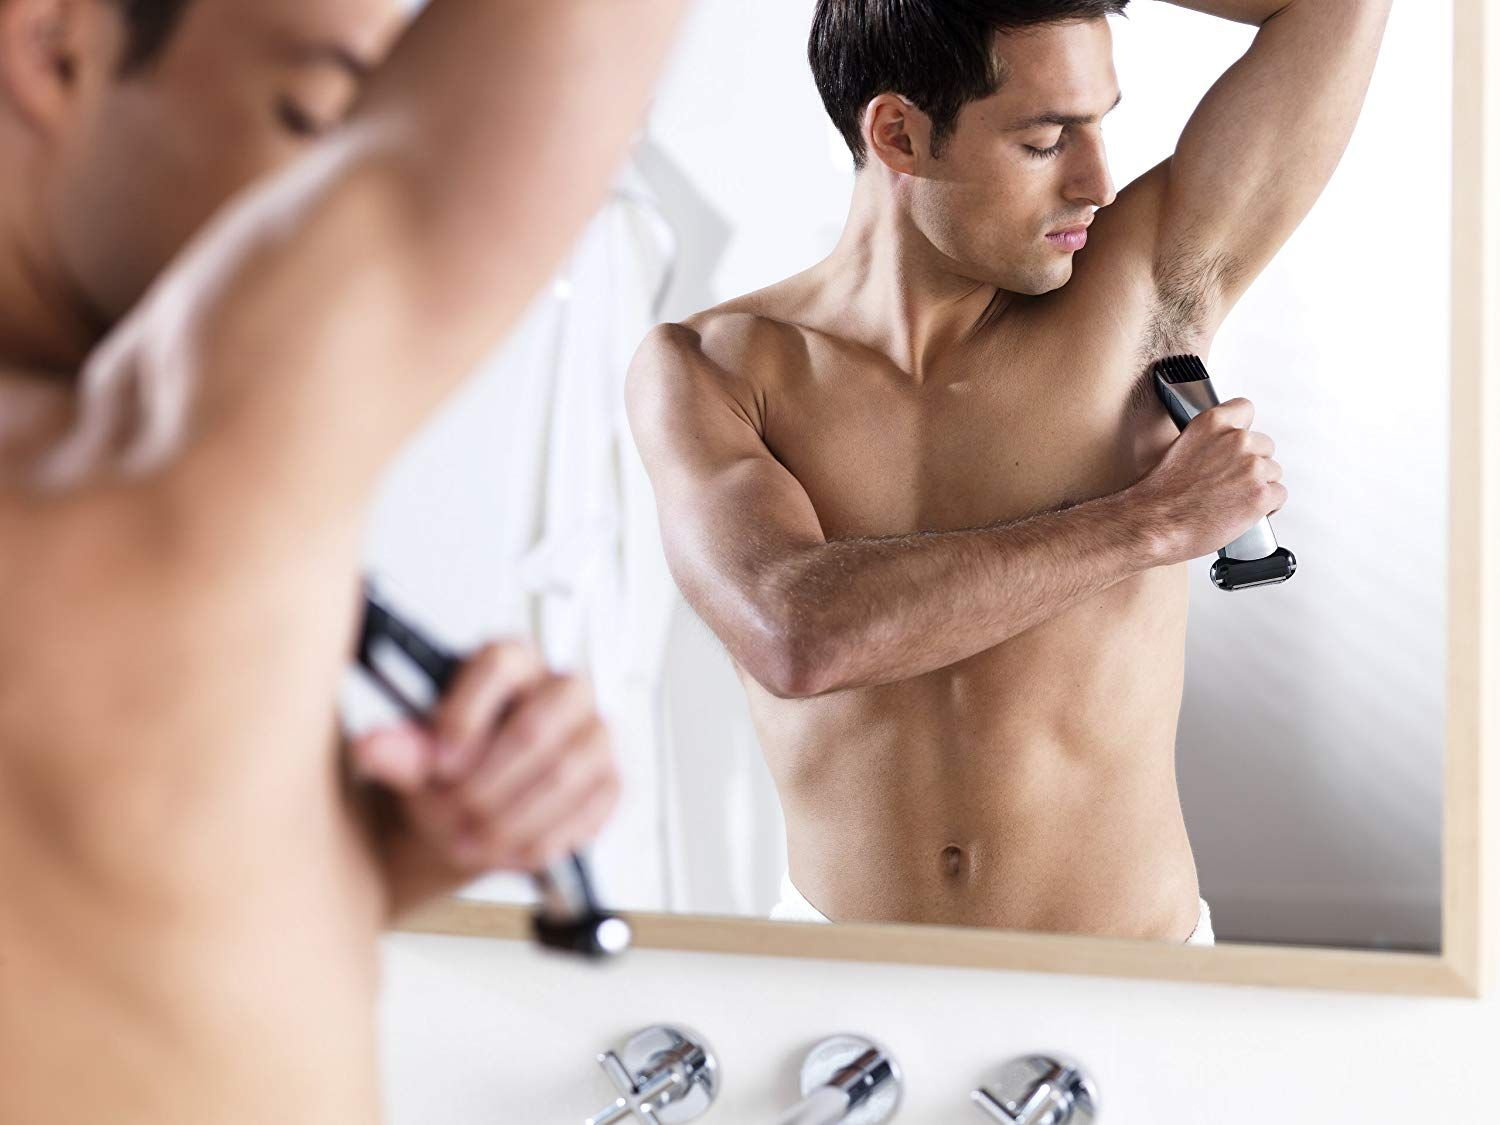 Down guys shaving there Manscaping for